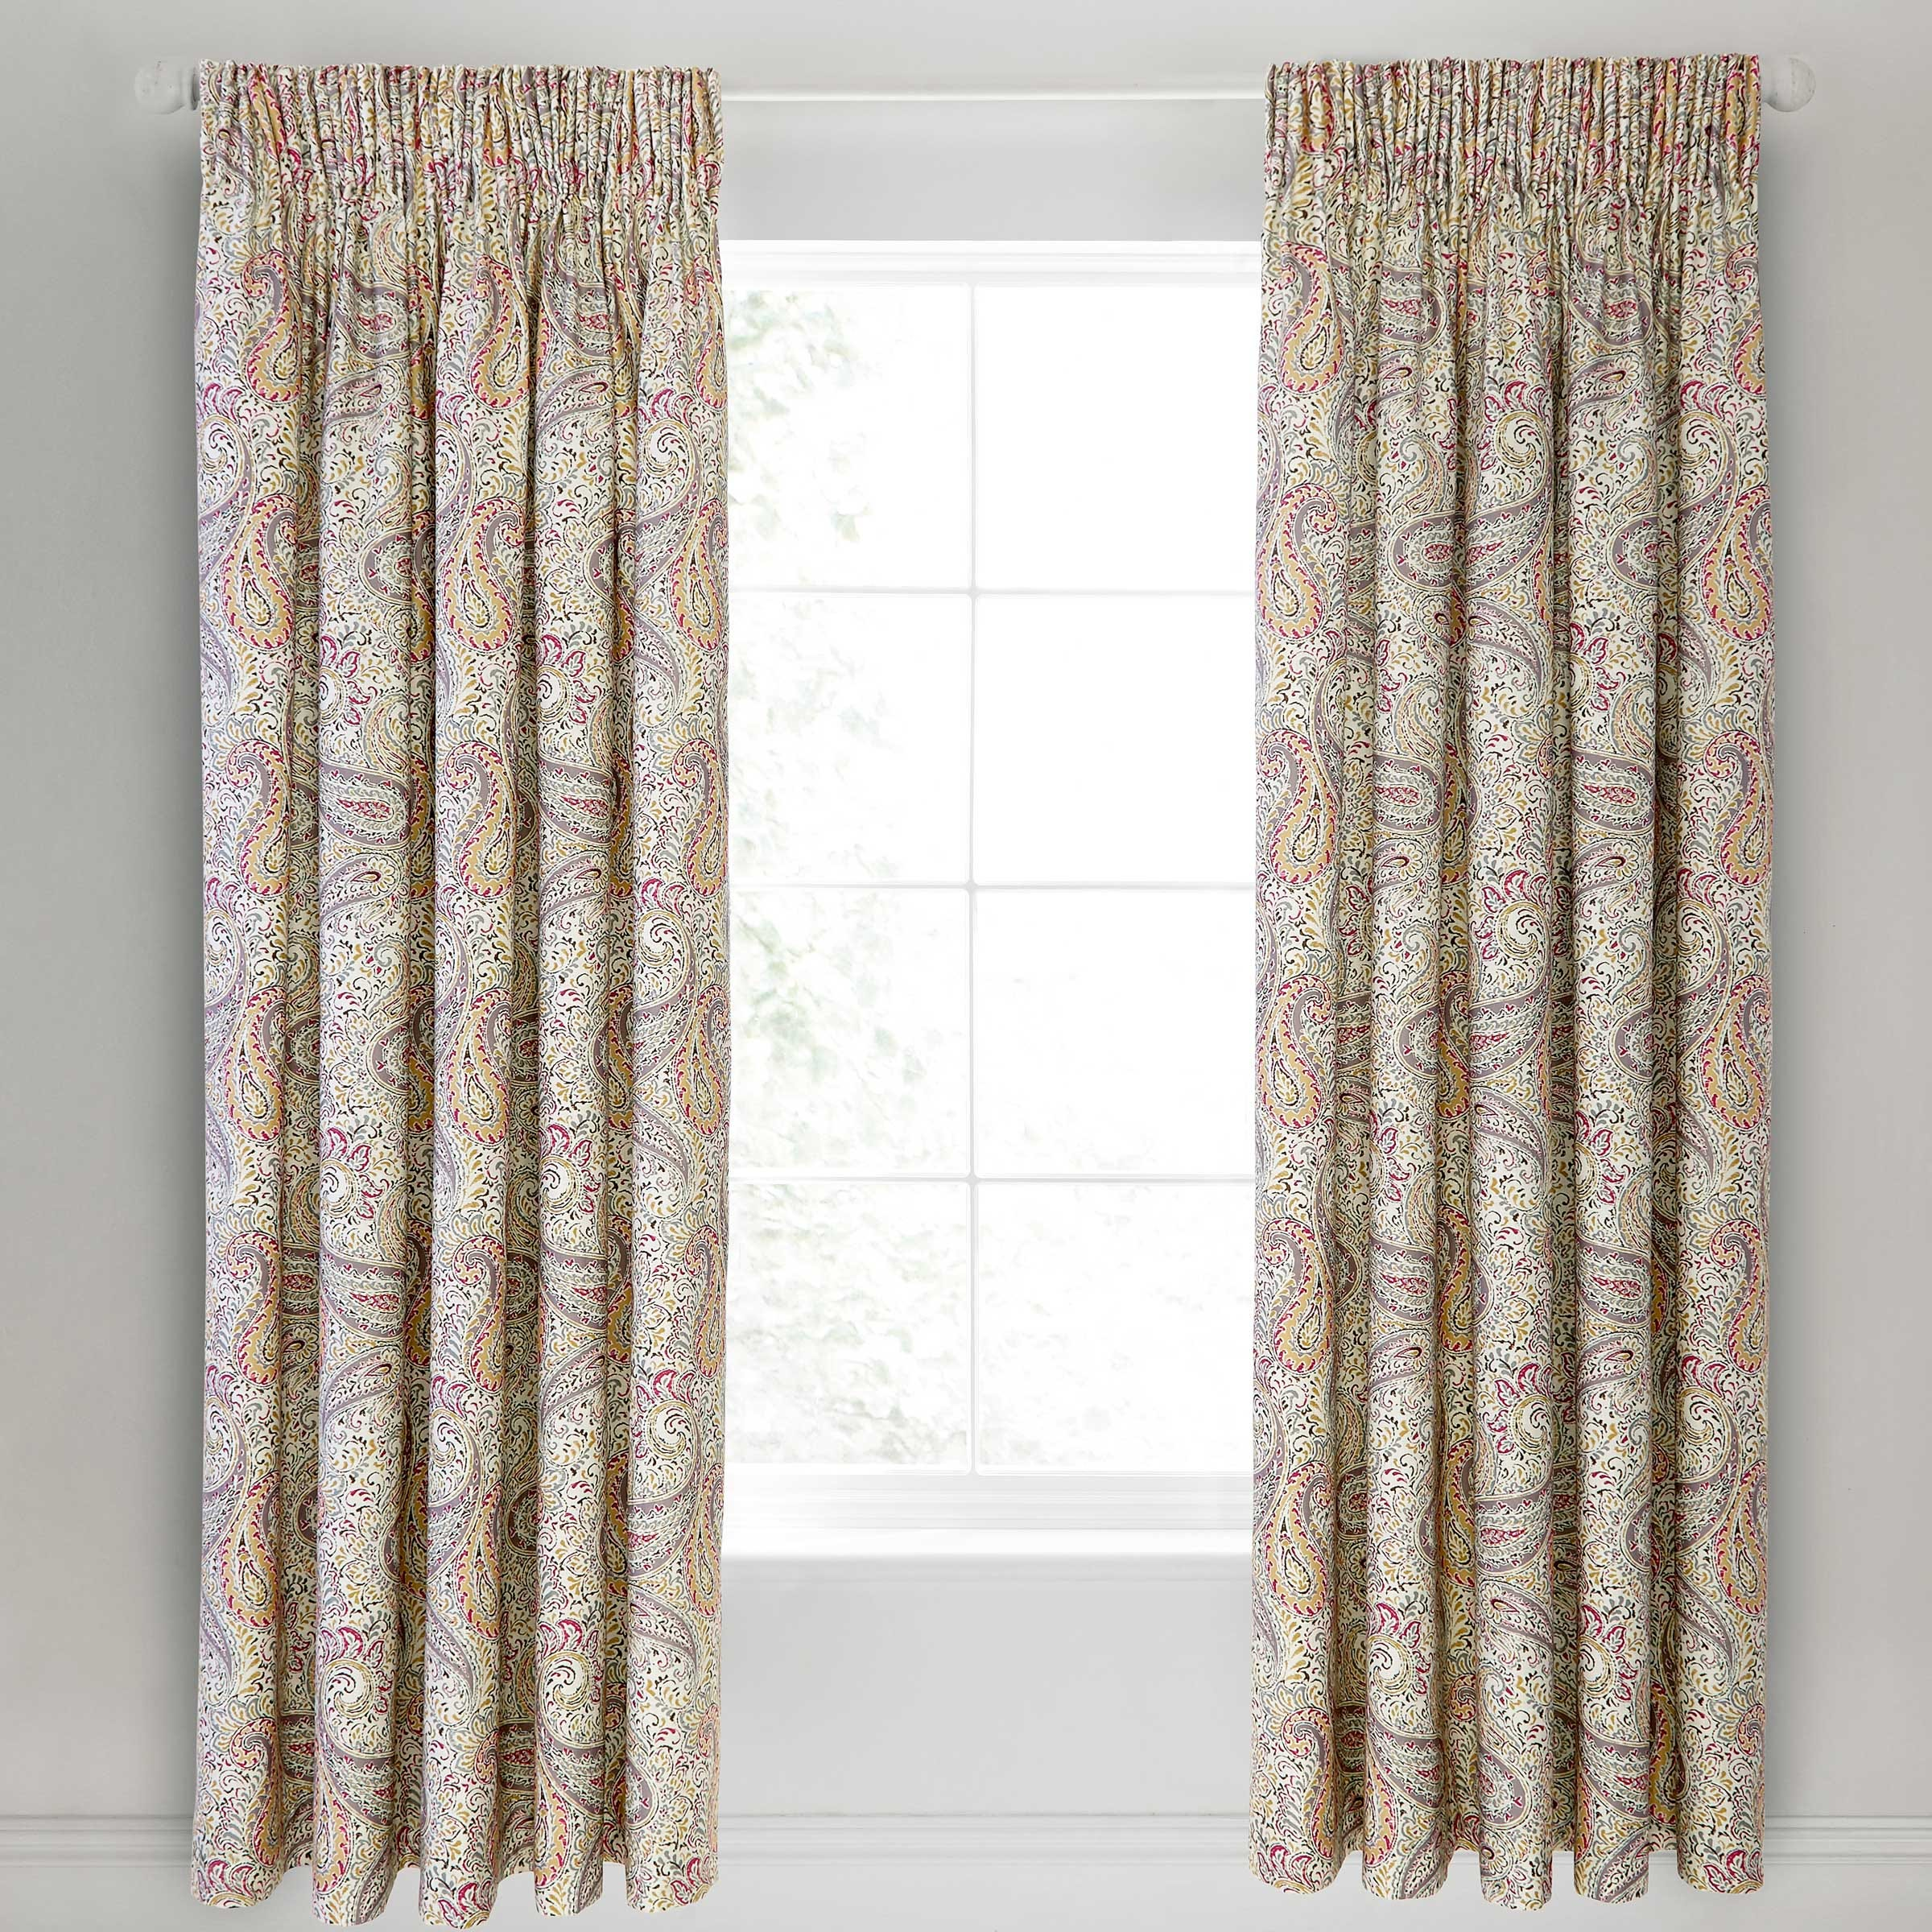 Bedeck 1951 Damara Lined Curtains 90x90 , Magenta